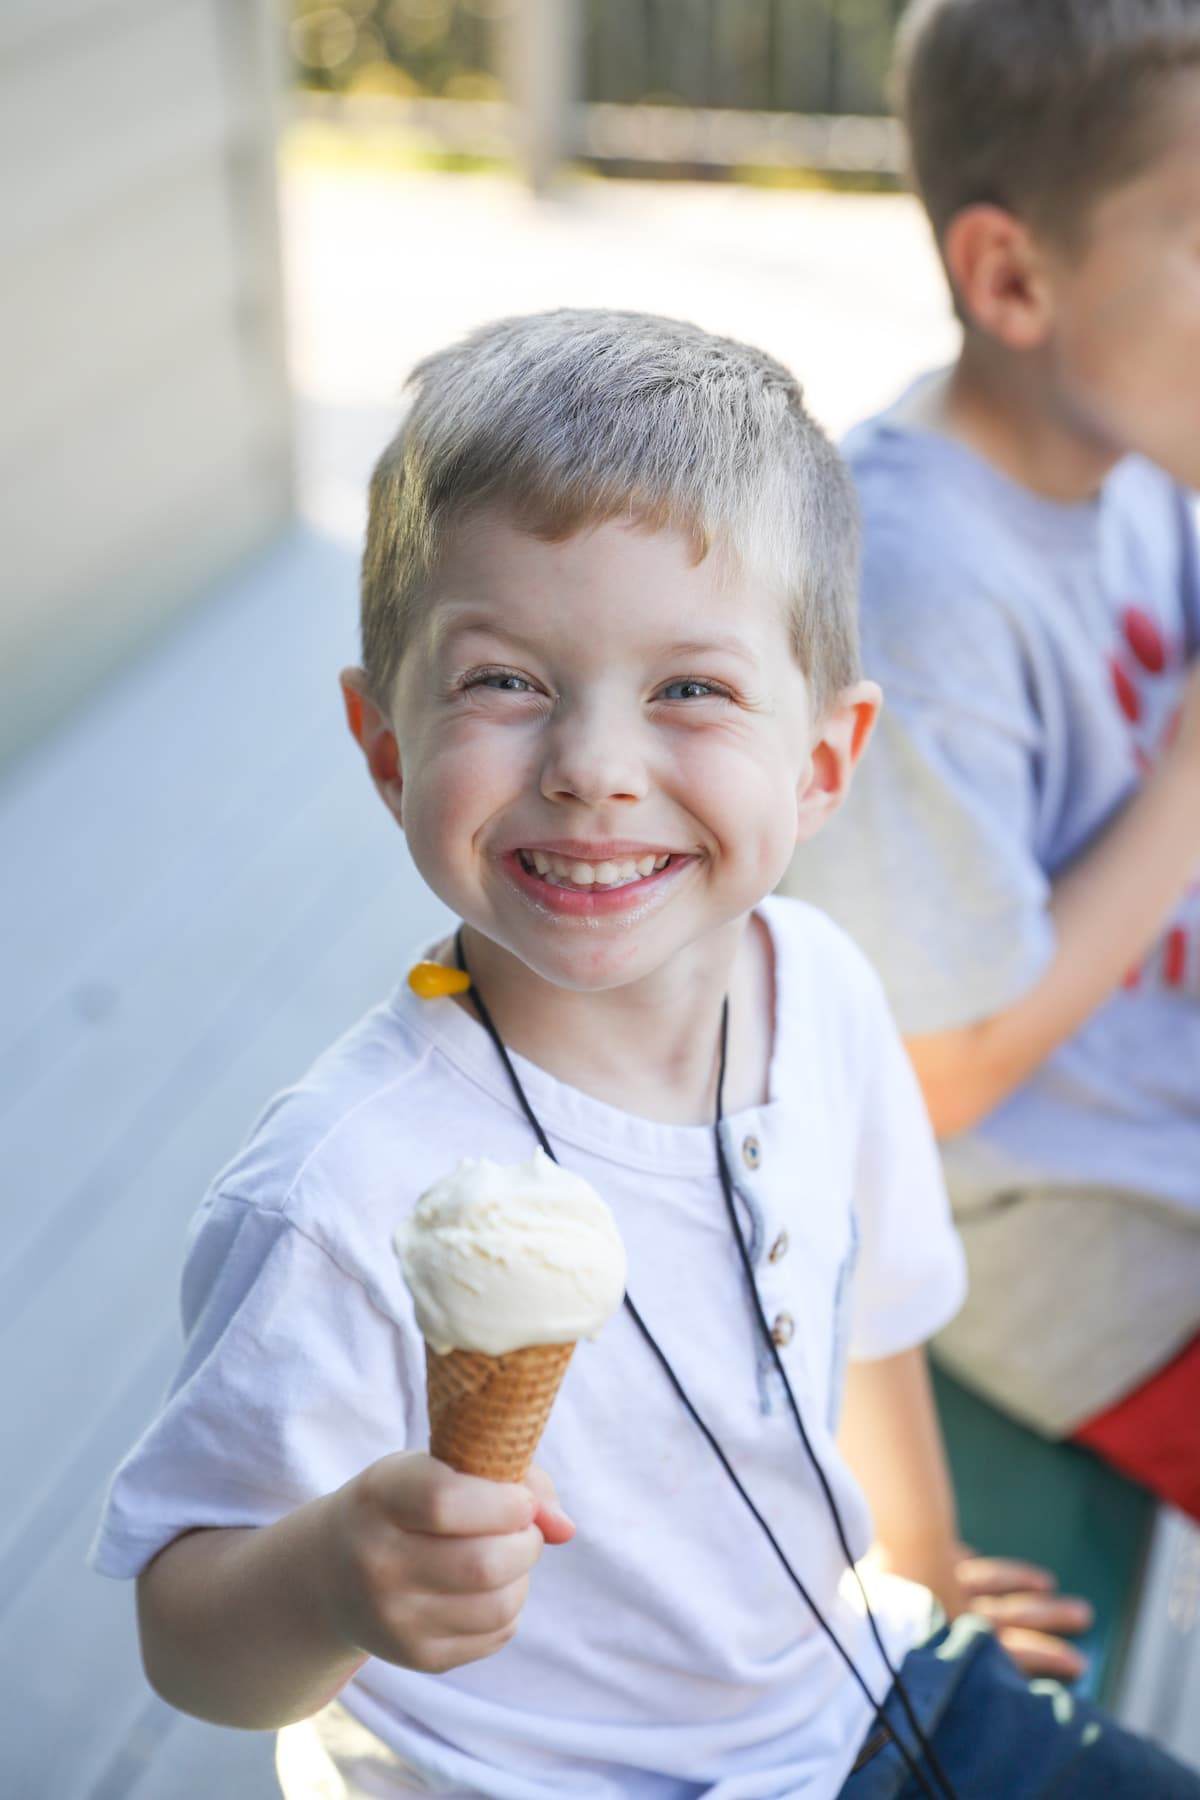 boy smiling holding vanilla ice cream cone